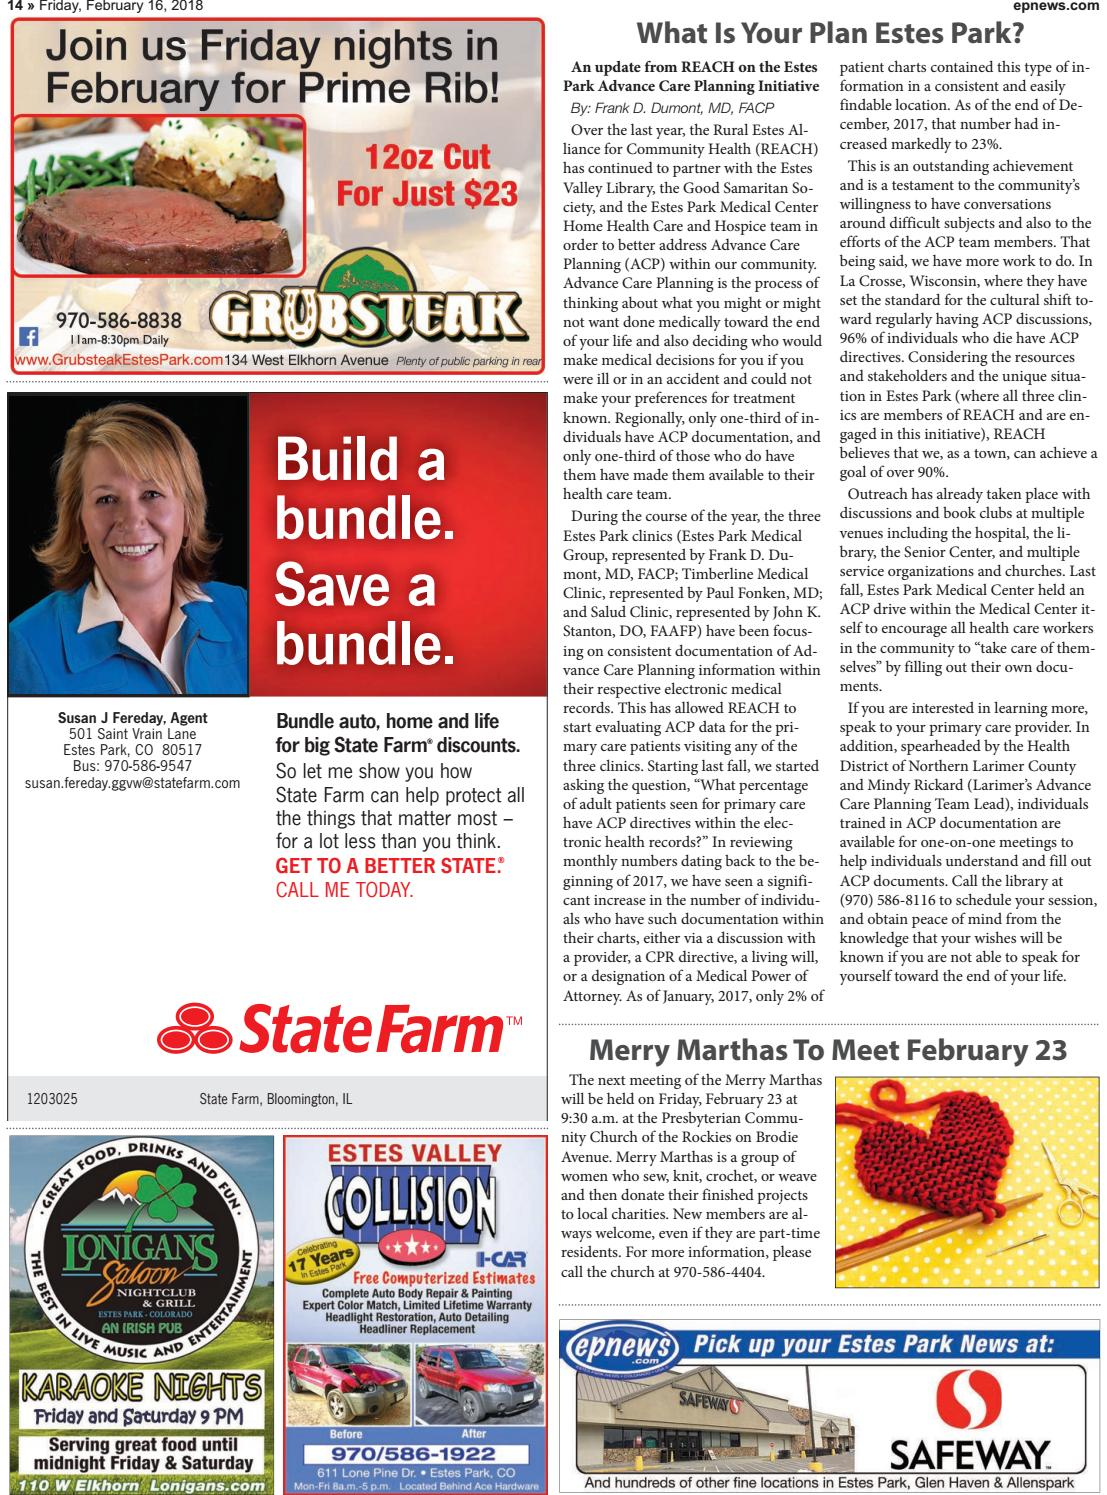 Estes Park News, February 16, 2018 by Estes Park News, Inc